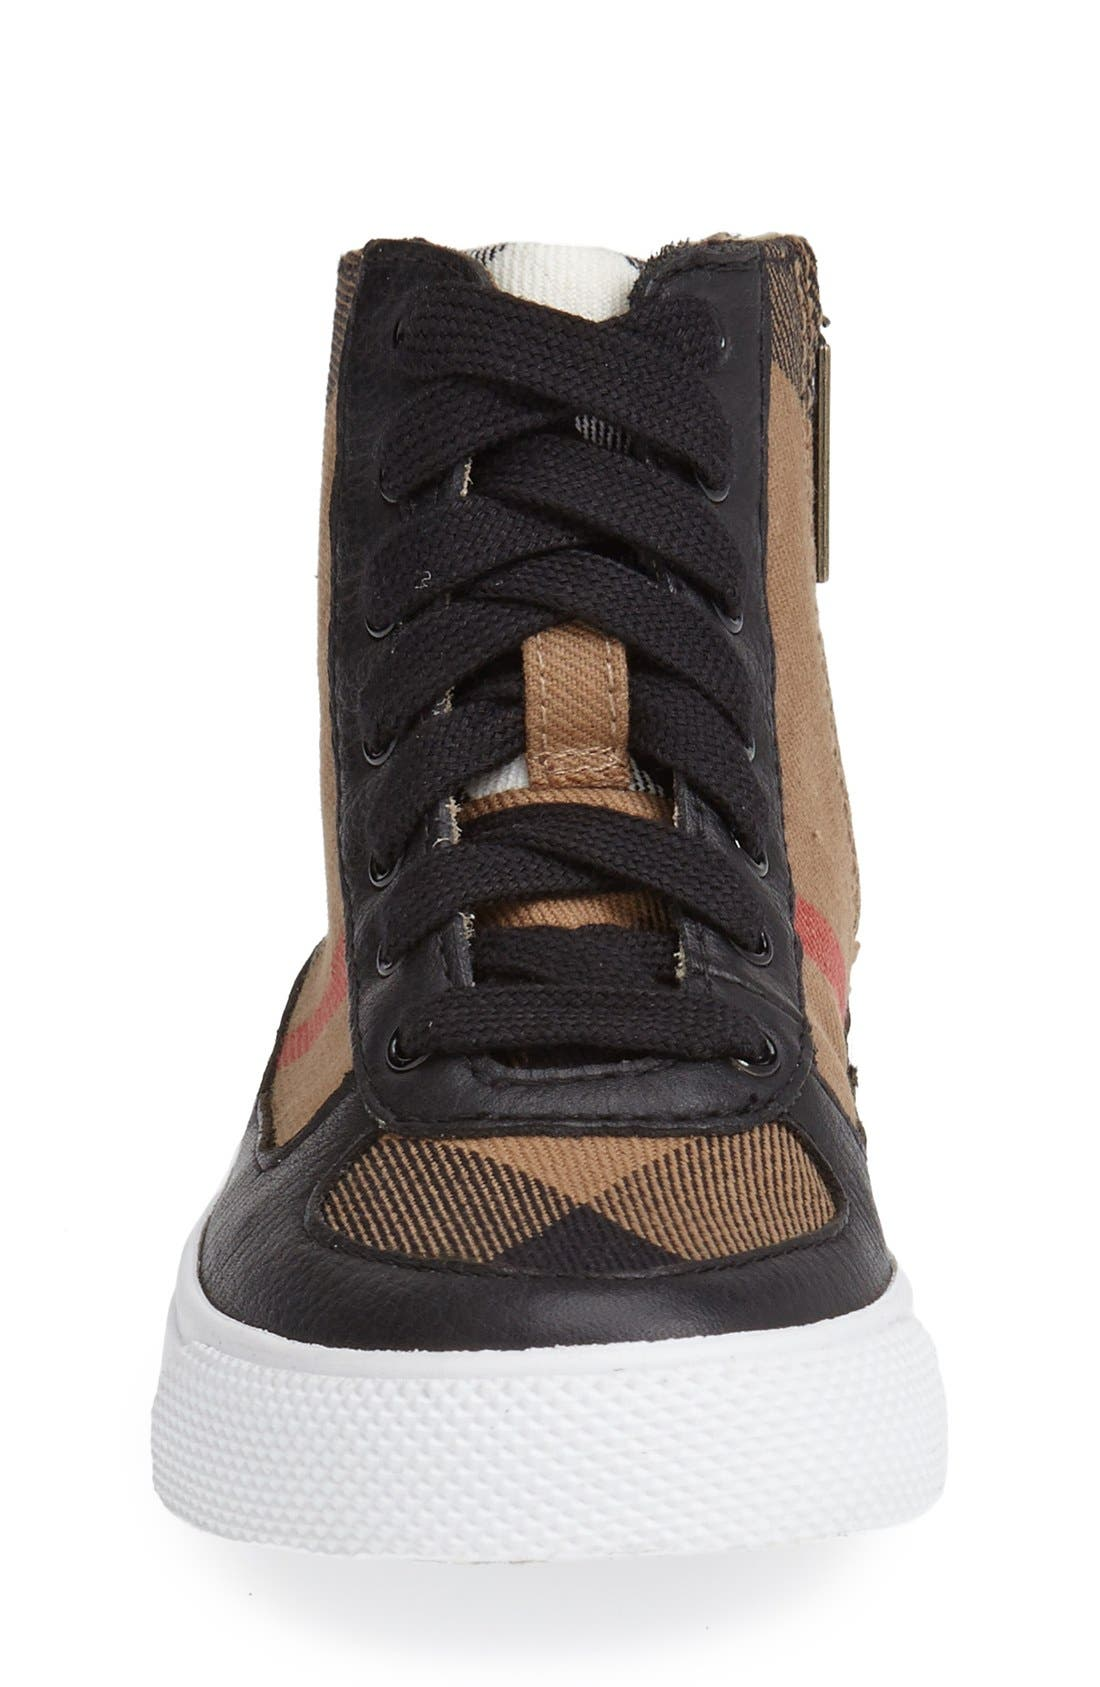 Alternate Image 3  - Burberry 'Merrison' High Top Sneaker (Walker, Toddler, Little Kid & Big Kid)